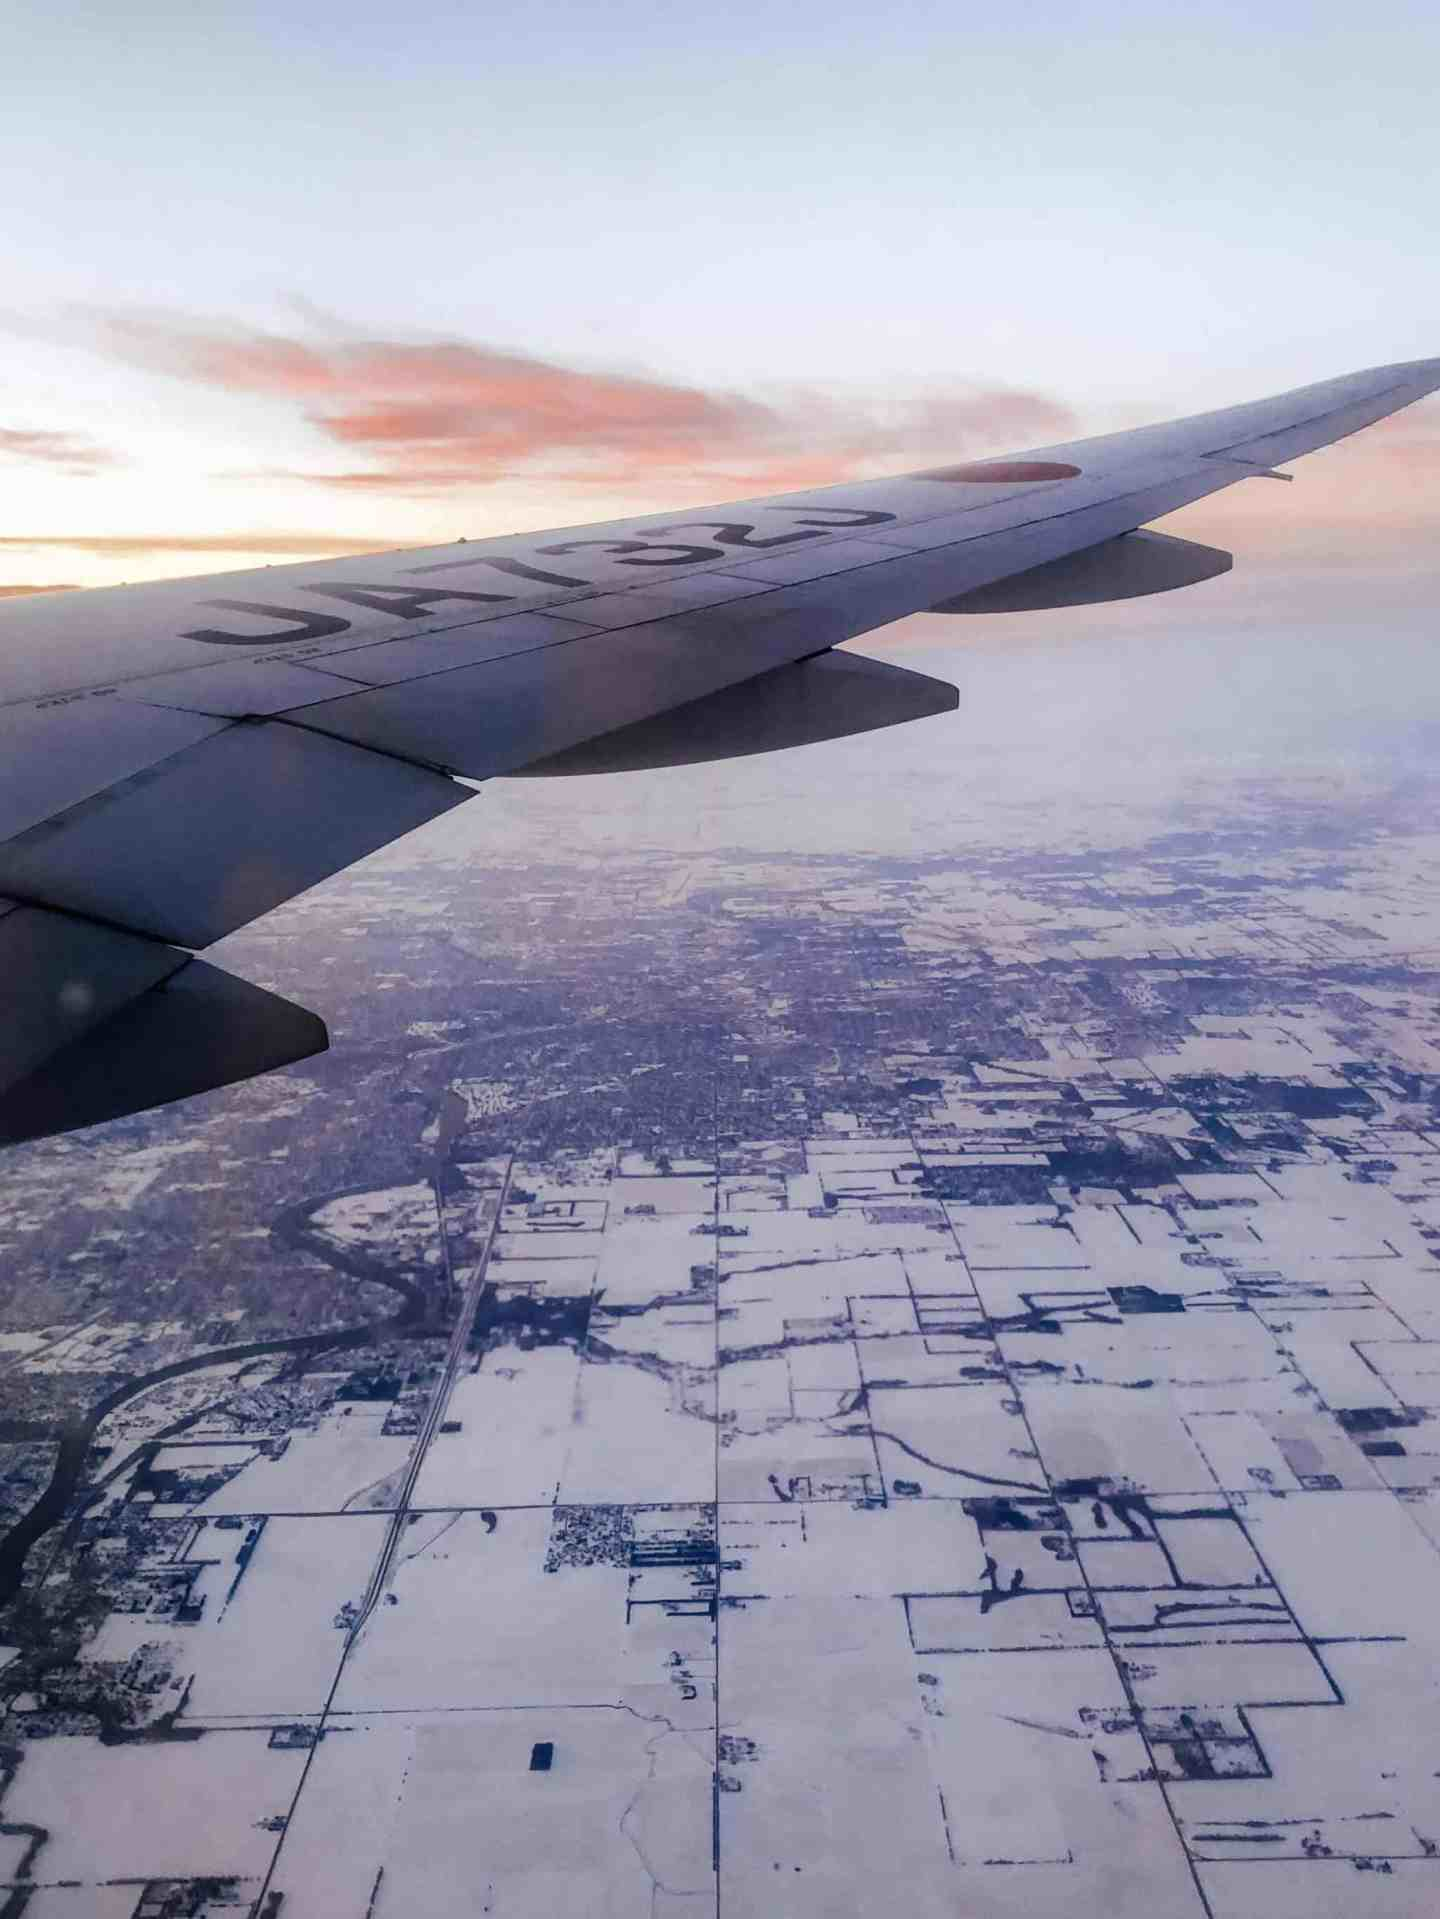 Airplane flying over snow